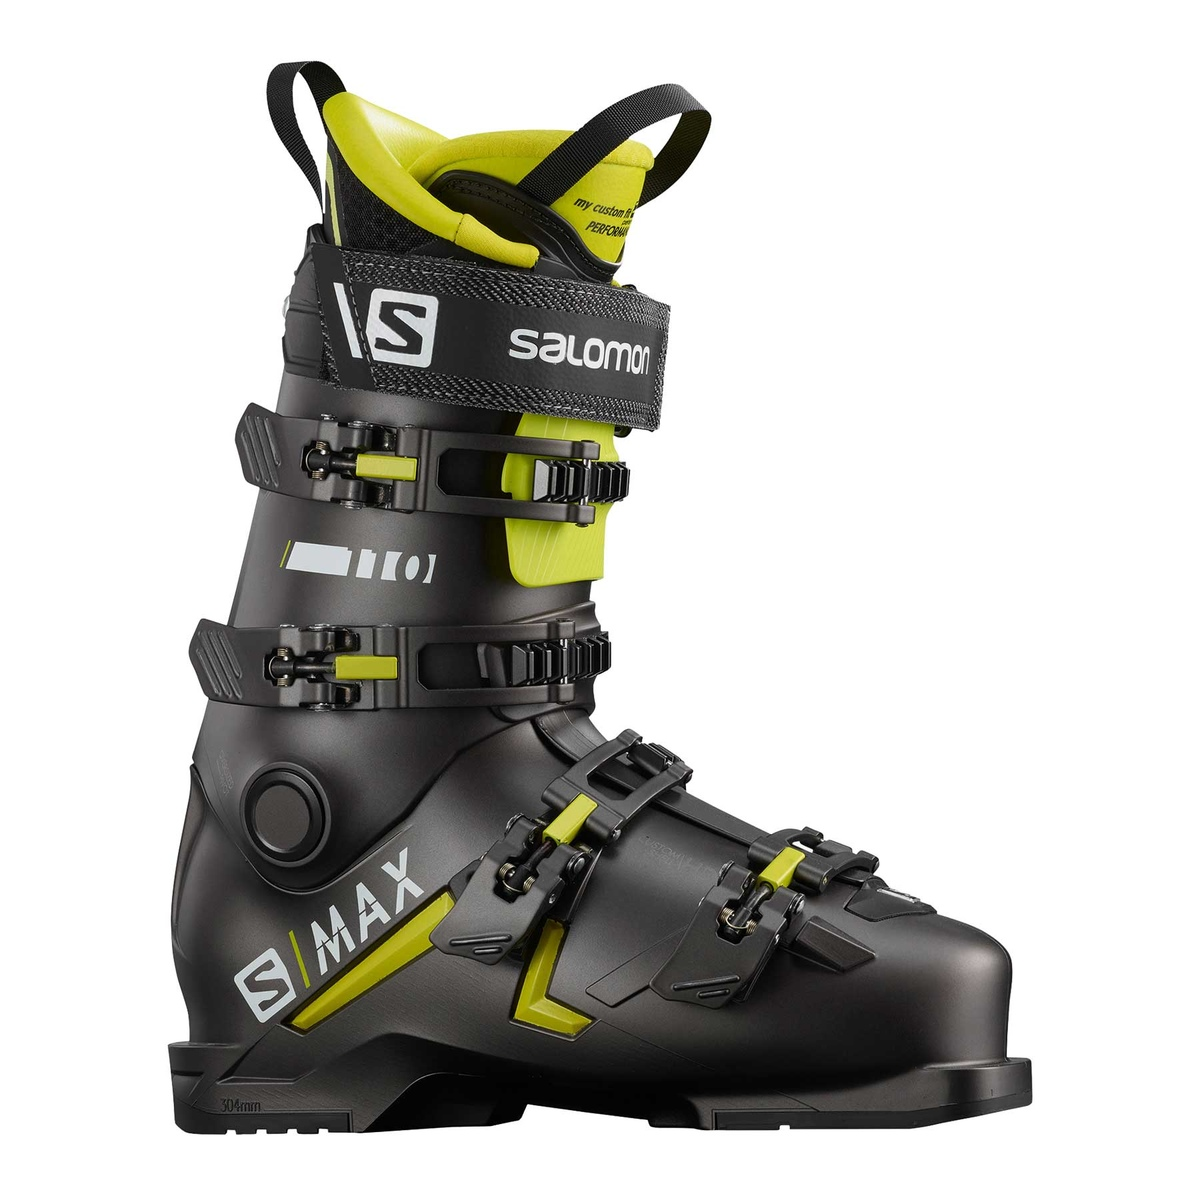 _PREMANUFACTURE_PRICE Salomon S/MAX 110